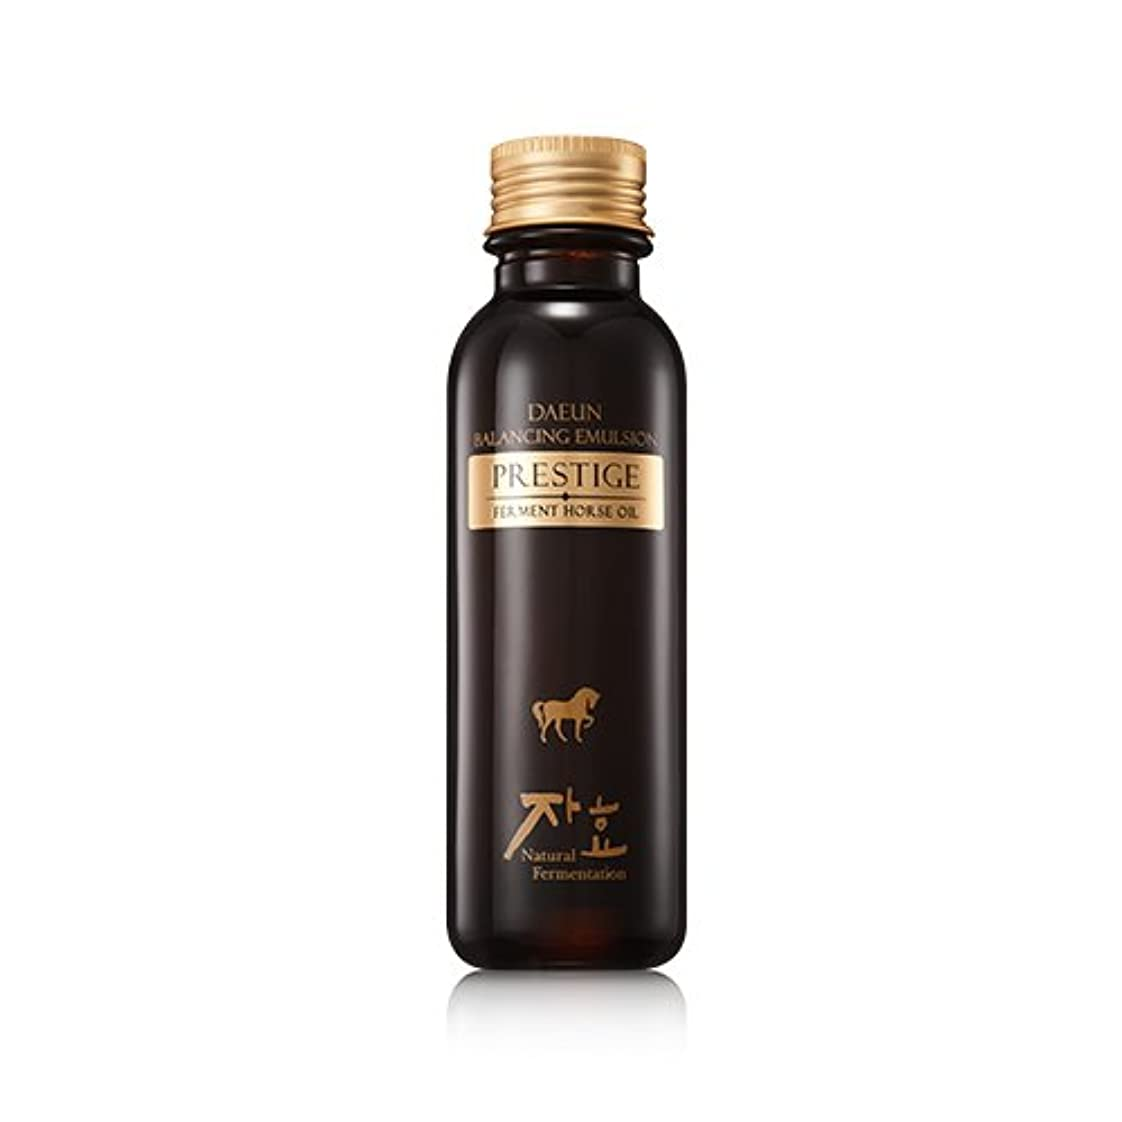 暴露する小石有害なZHAHYO Daeun Balancing Prestige Fermented Horse Oil Emulsion(Lotion) 150ml/Korea Cosmetics